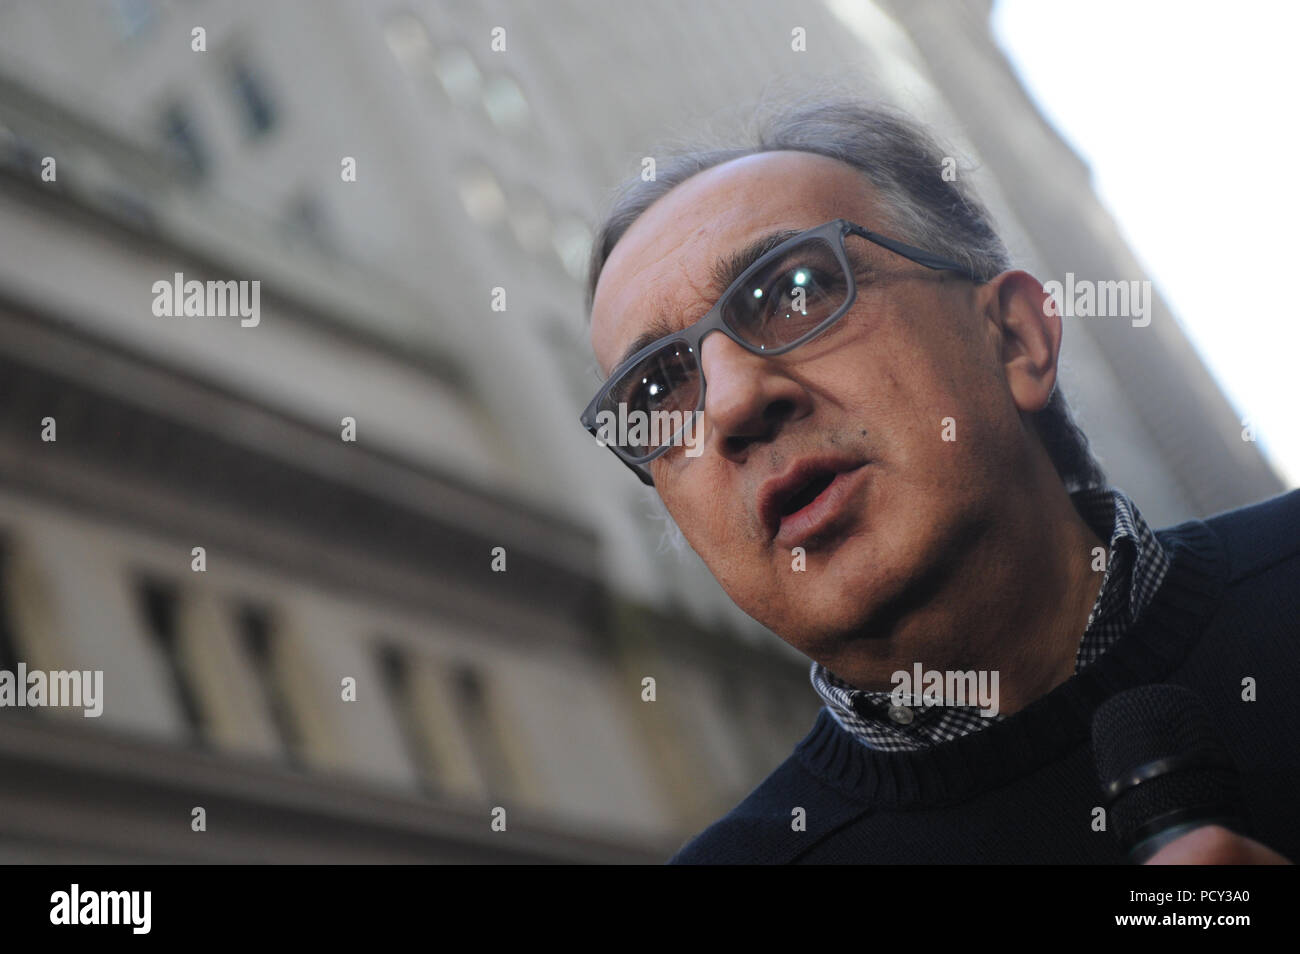 NEW YORK, NY - OCTOBER 21: Chief Executive Officer of Fiat Chrysler Automobiles Group Sergio Marchionne applauds after ringing the opening bell at the New York Stock Exchange (NYSE) as Ferrari starts trading for the first day in New York on Oct. 21, 2015. Ferrari's roaring debut on Wall Street Êalso Ferrari CEO Amedeo Felisa at the NYSE ahead of the racecar makerÕs stock market debut  on October 21, 2015 in New York City.  People:  Guests Stock Photo